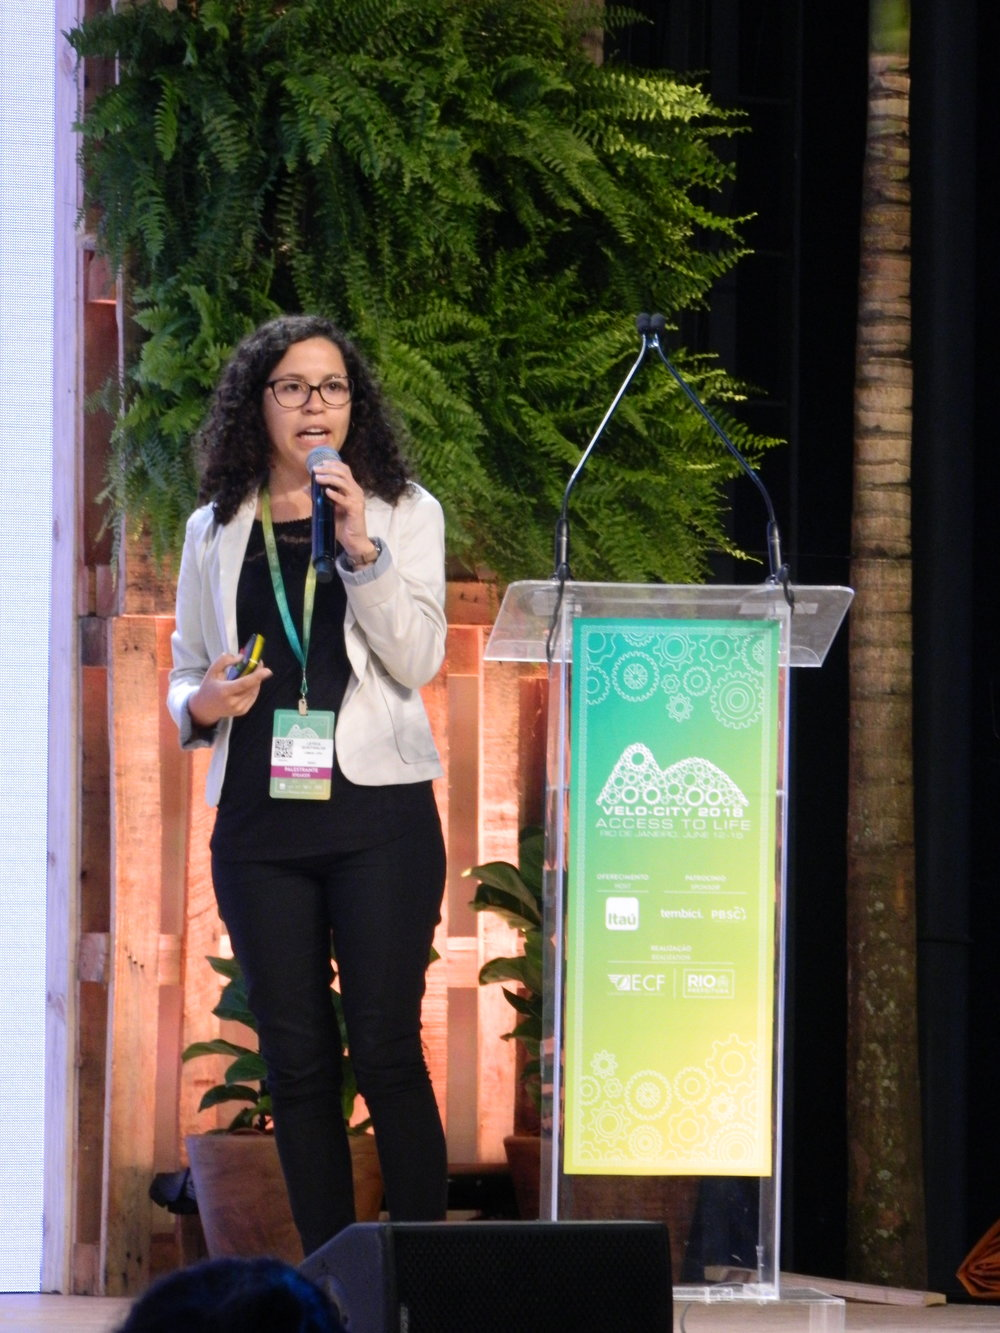 Leticia Quintanilha addresses work on bicycle-subway integration in Rio de Janeiro